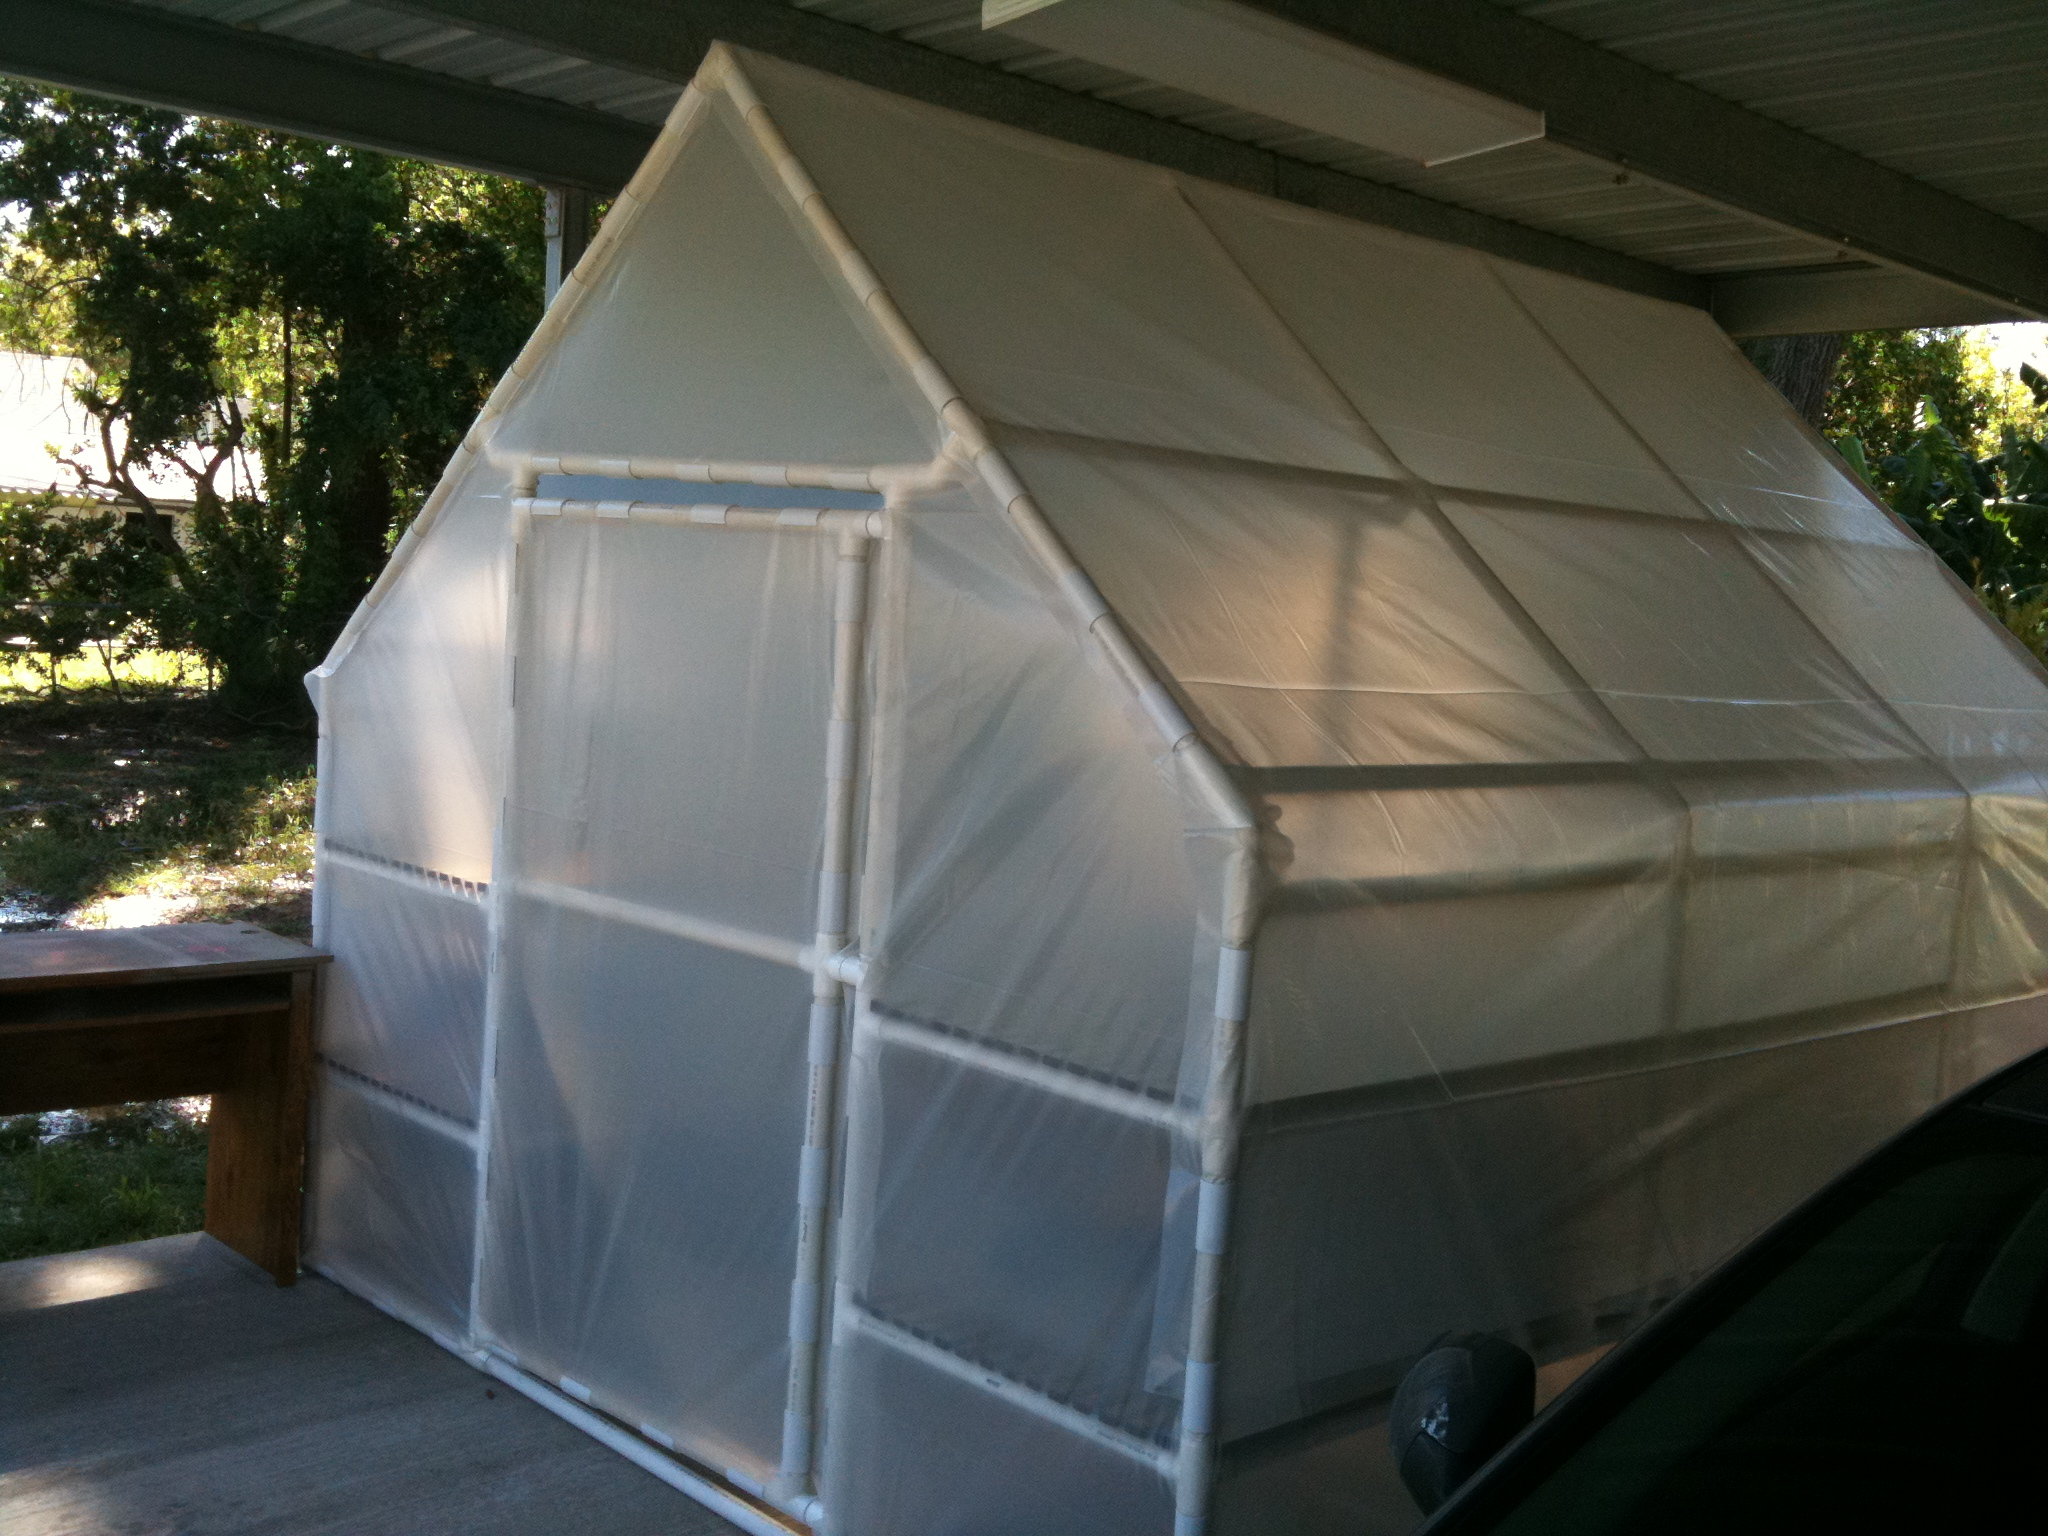 ... DIY Pvc Greenhouse Plans Free Download queen platform bed design plans